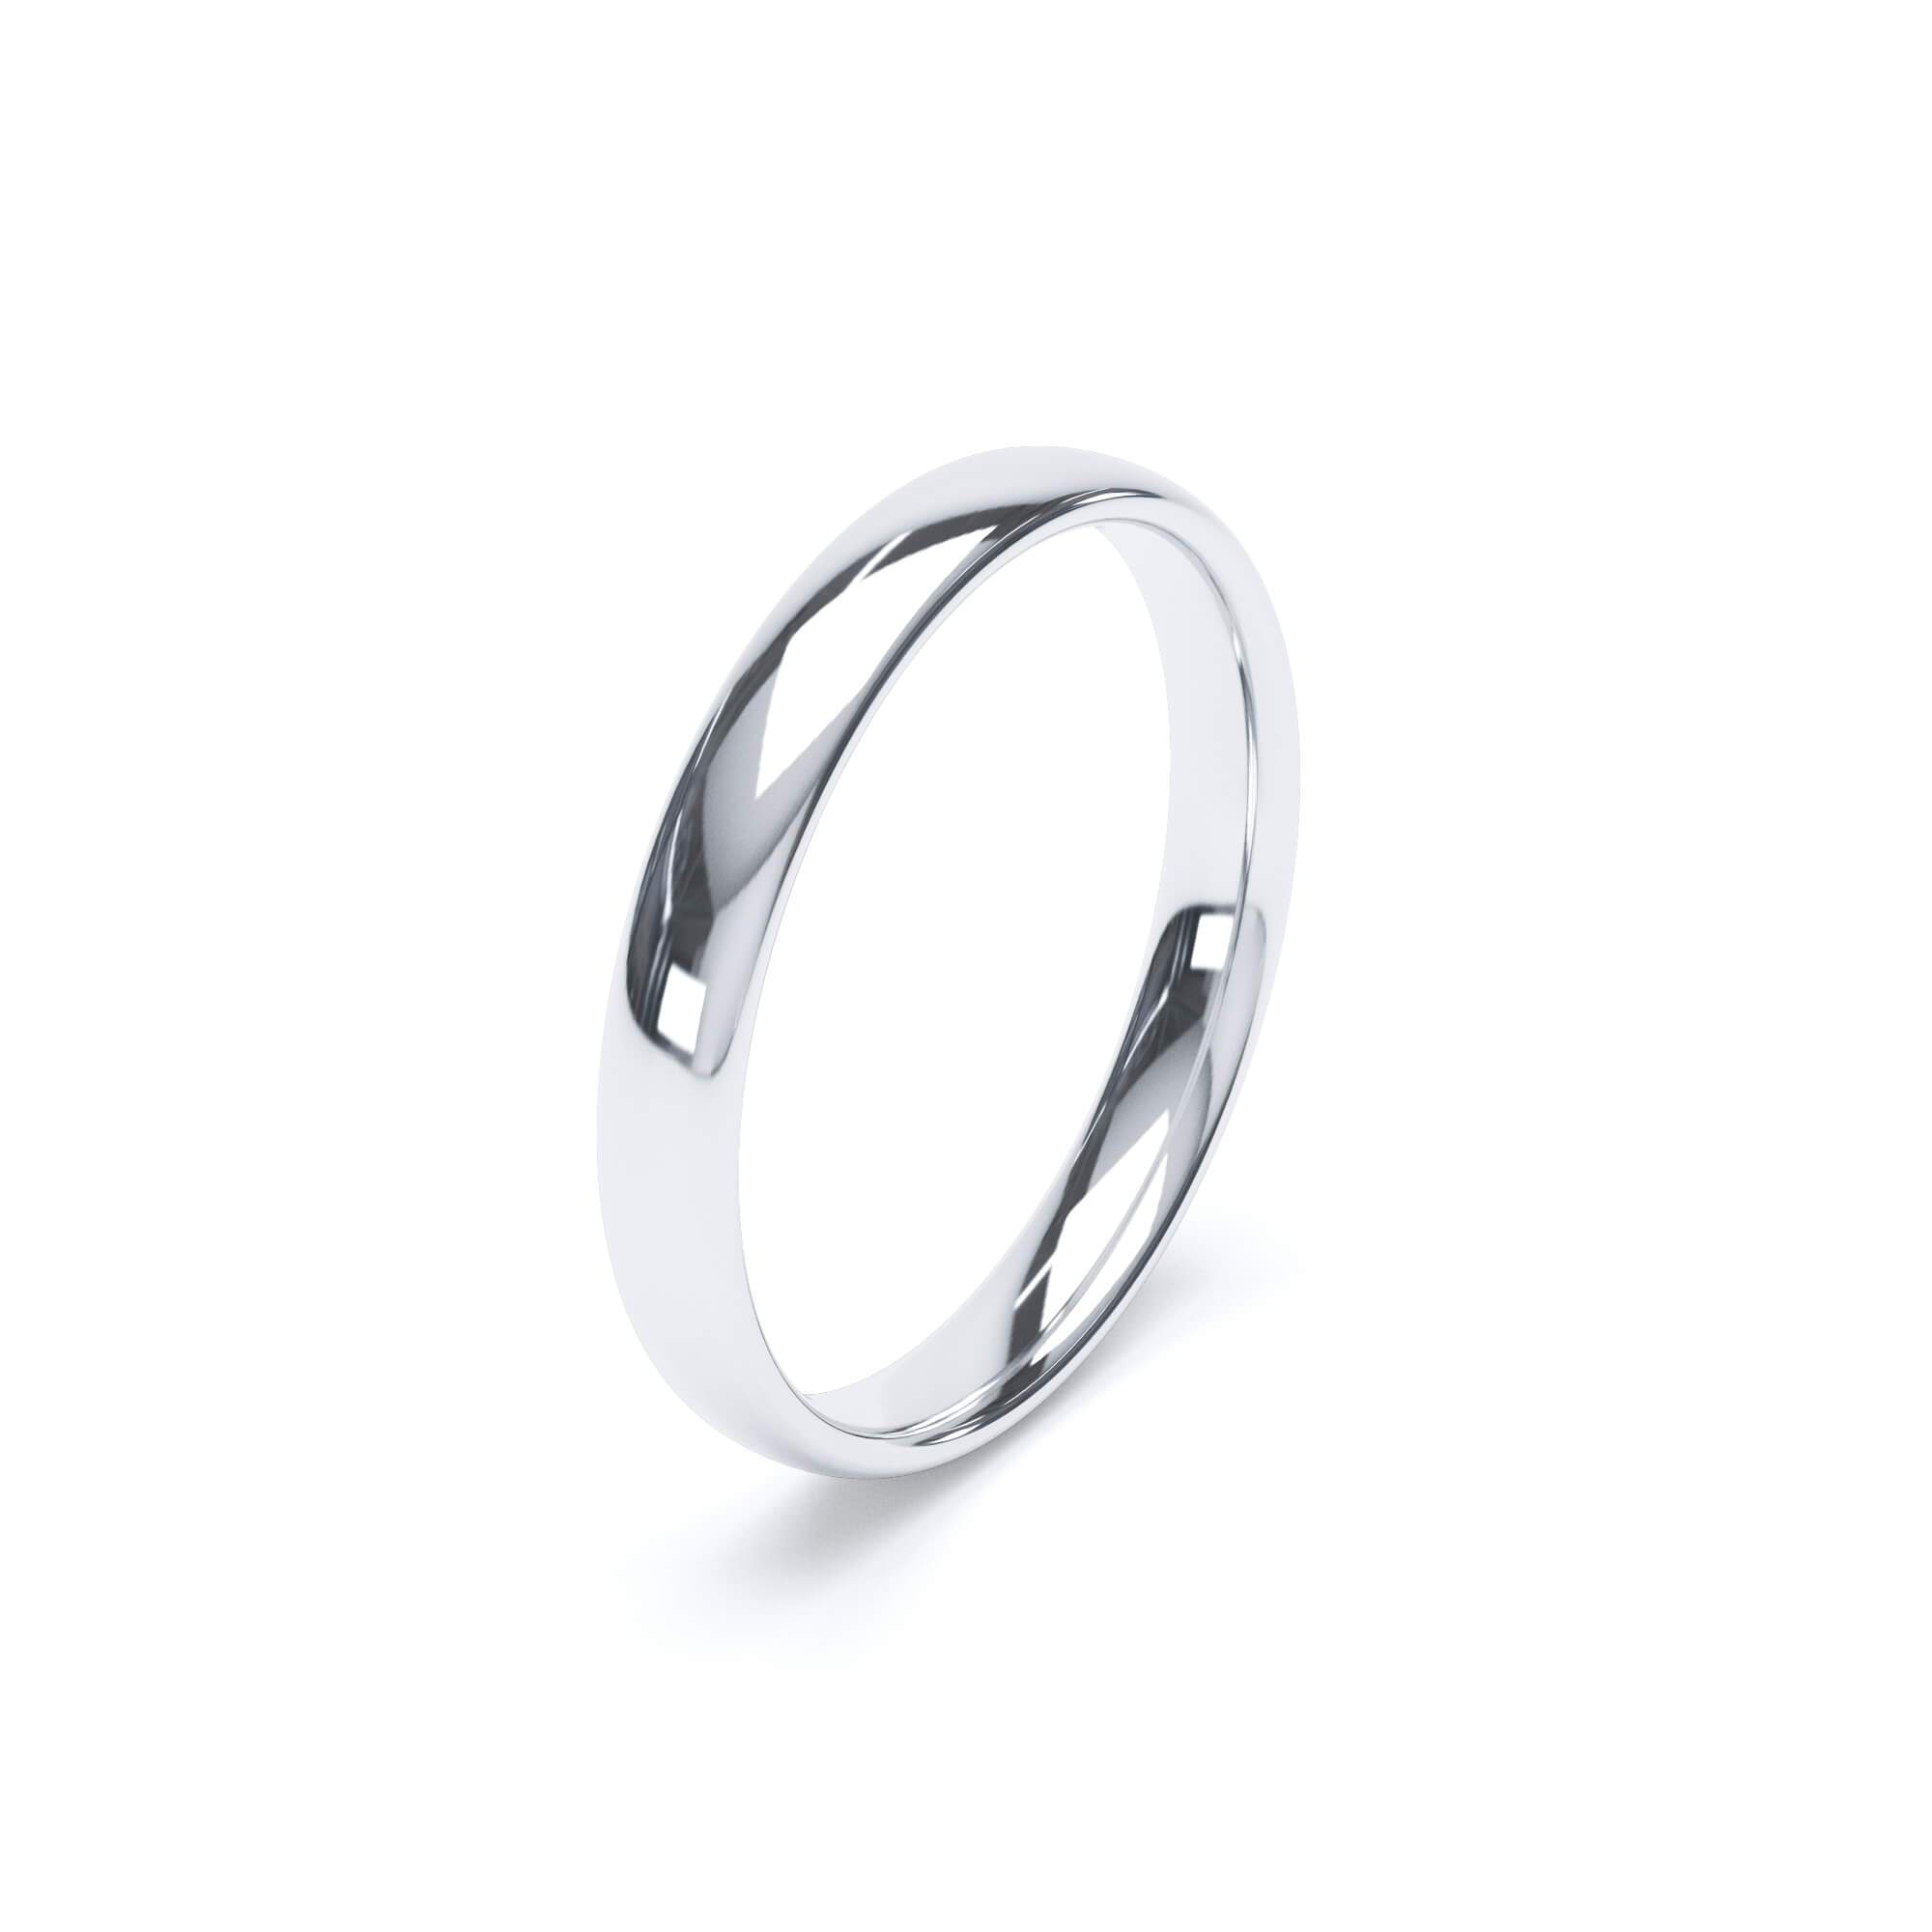 Women's Plain Wedding Band Regular Court Profile Platinum Wedding Bands Lily Arkwright